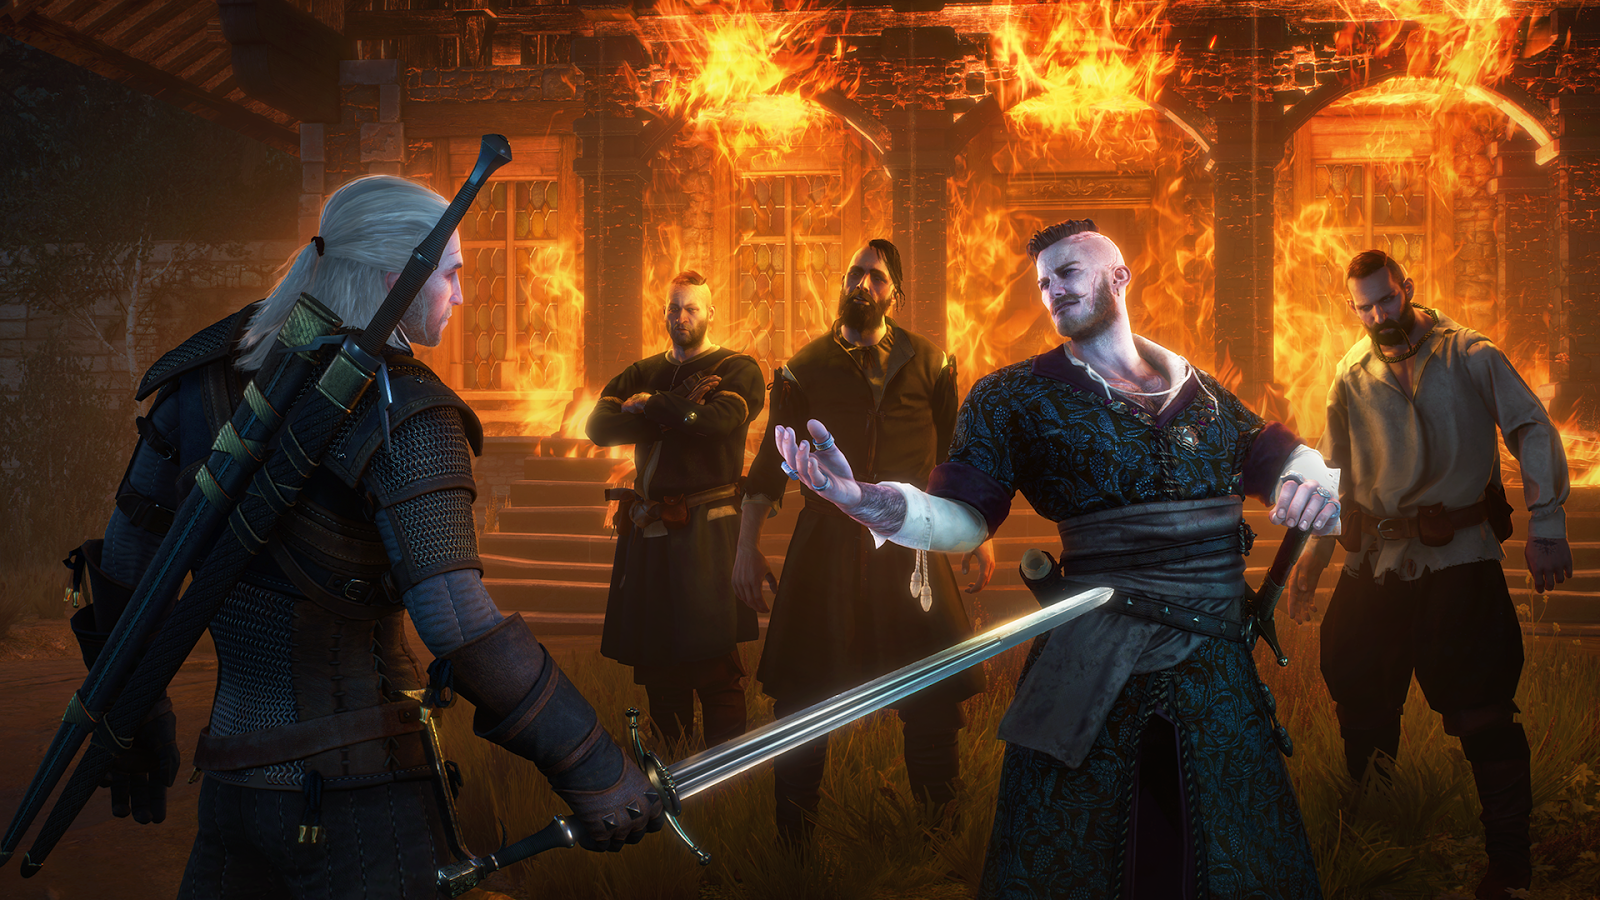 An encounter with Olgierd early on can play out in two strikingly different ways. Heads roll, but whose changes based on the decisions you make.